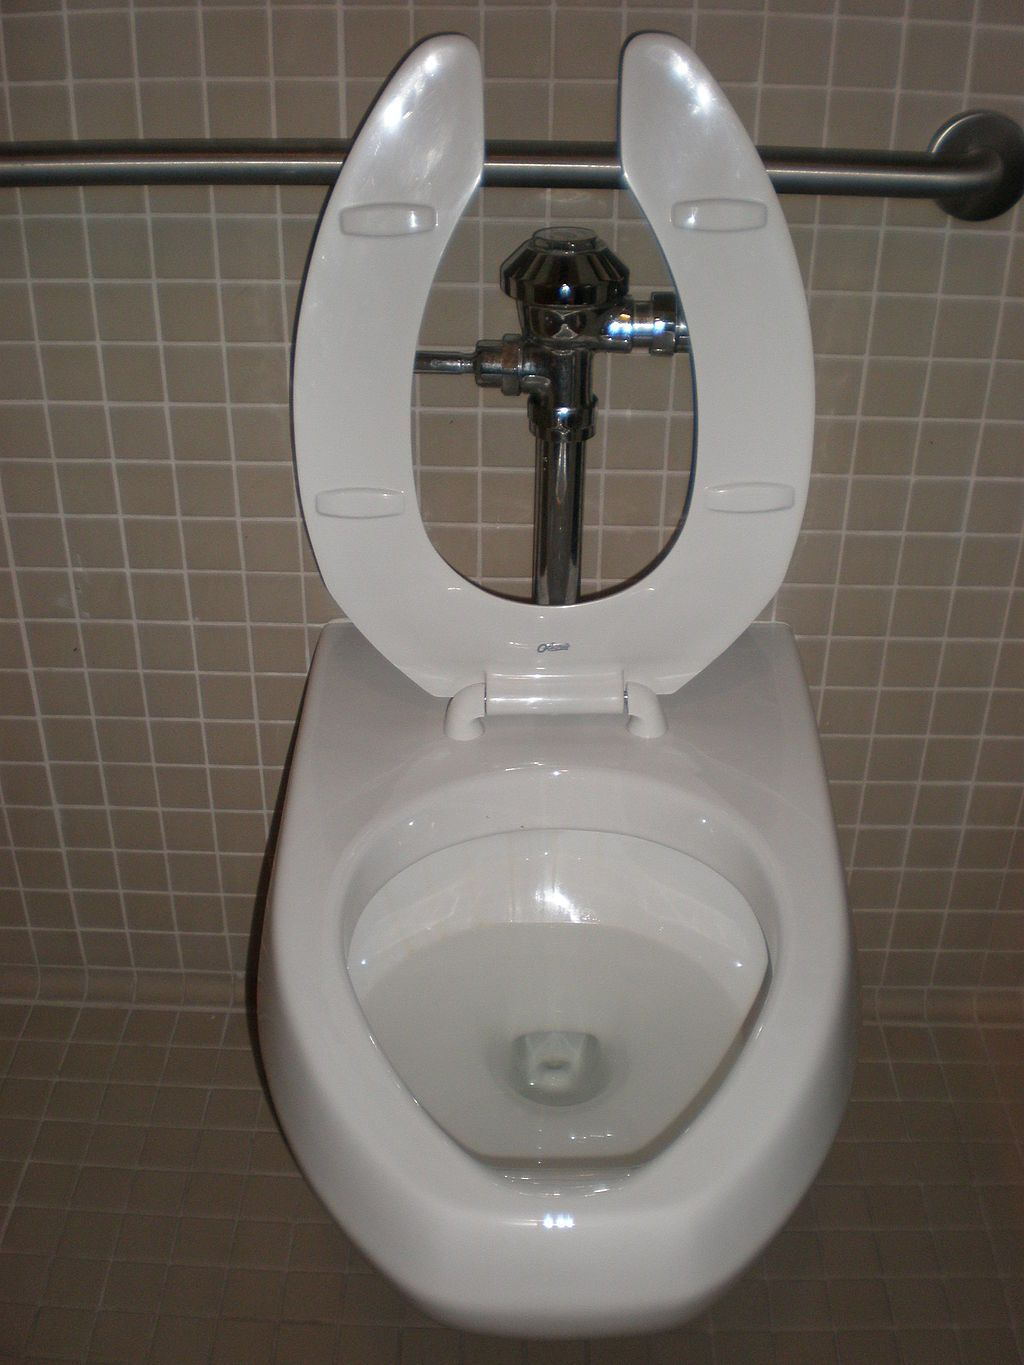 How to unclog a toilet zimmber blog leaking toilet